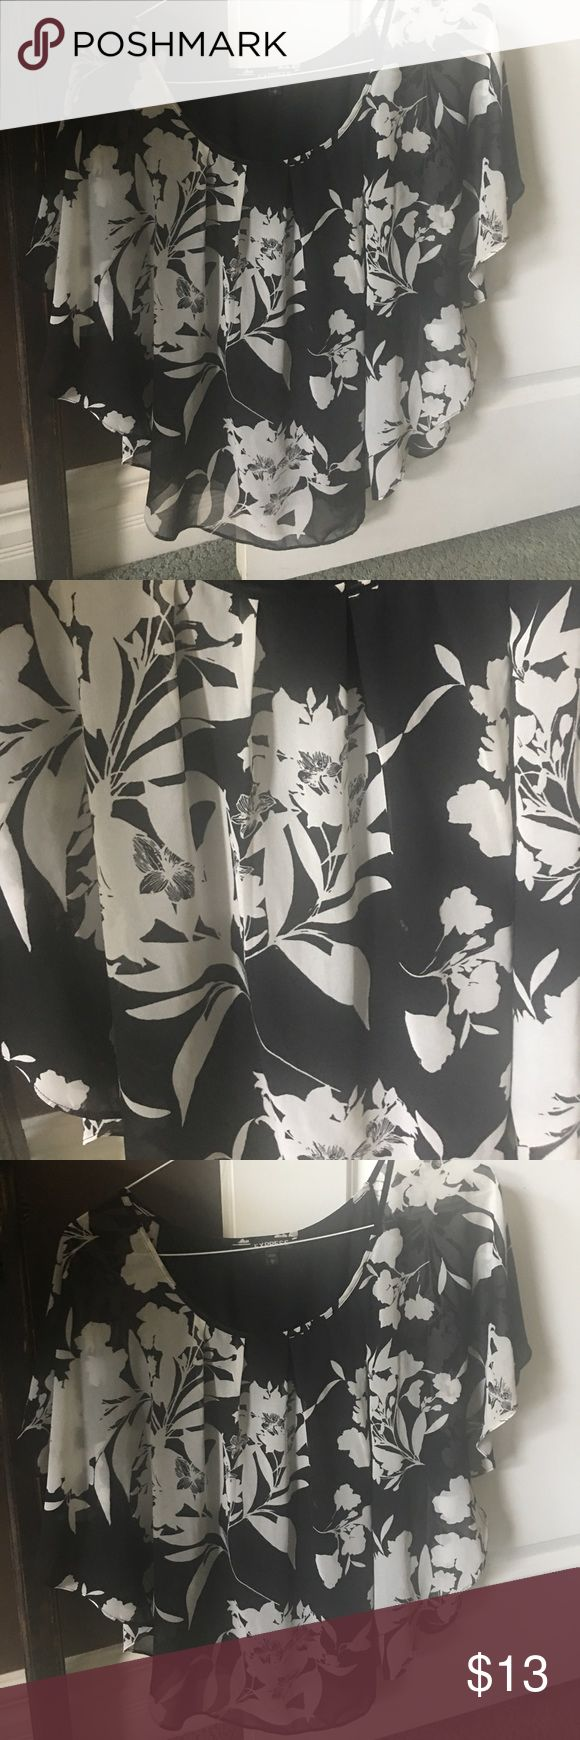 Batwing top Super cute batwing top black and white floral, it's a polyester type fabric! There's a black built in tank underneath Express Tops Tunics